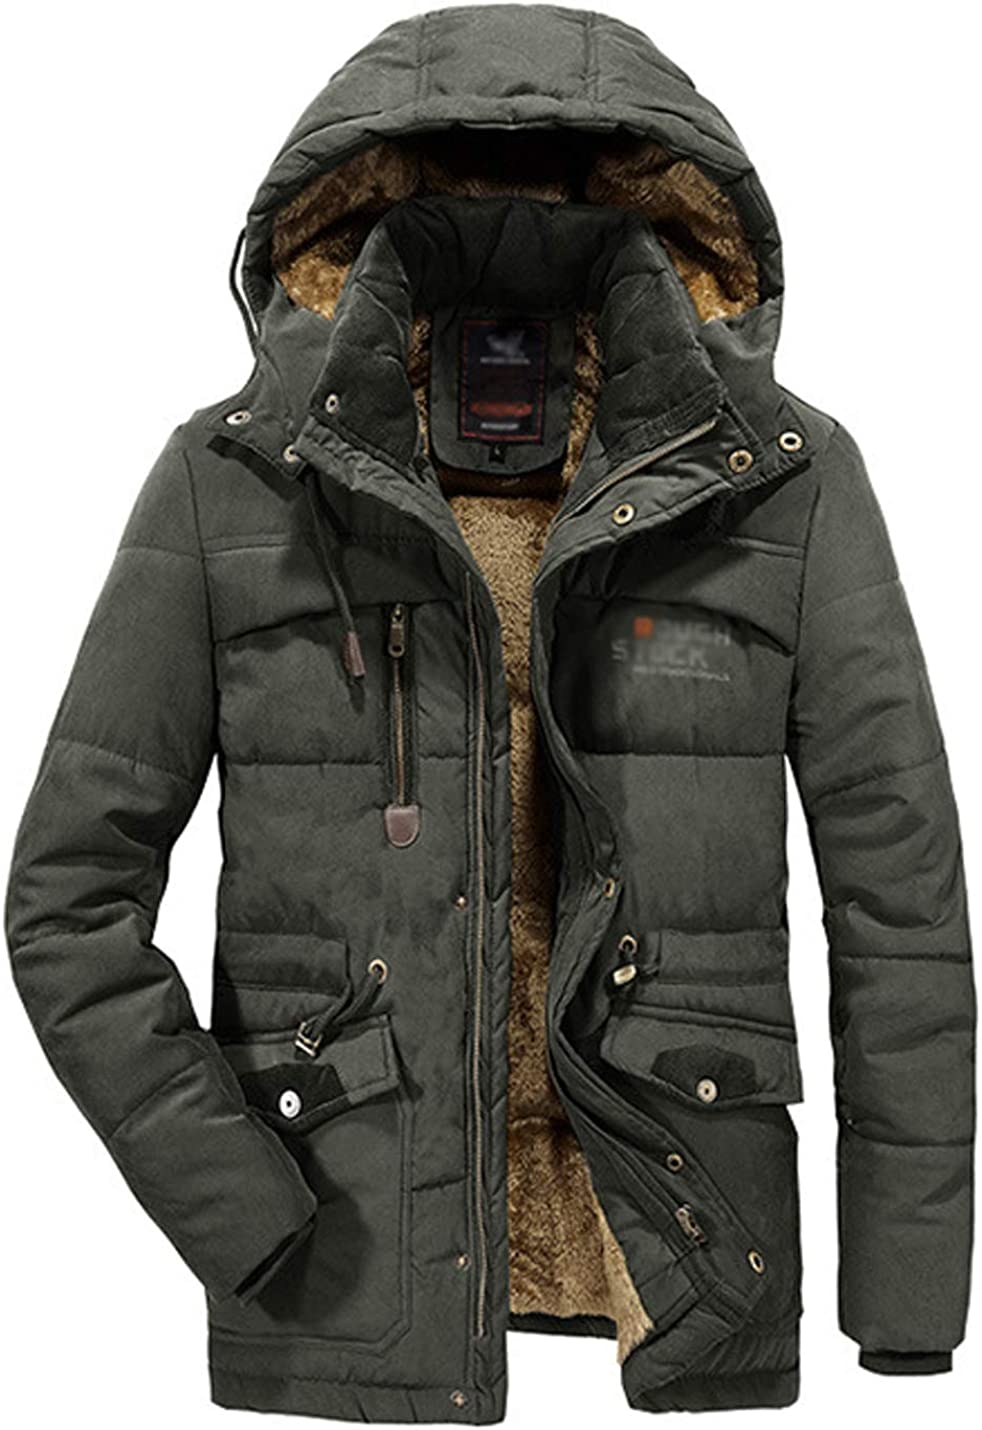 ZGZZ7 Men's Winter Sherp-Lined Jackets Cotton Padded Outerwear Mid-Long Puffy Coats Plus Size